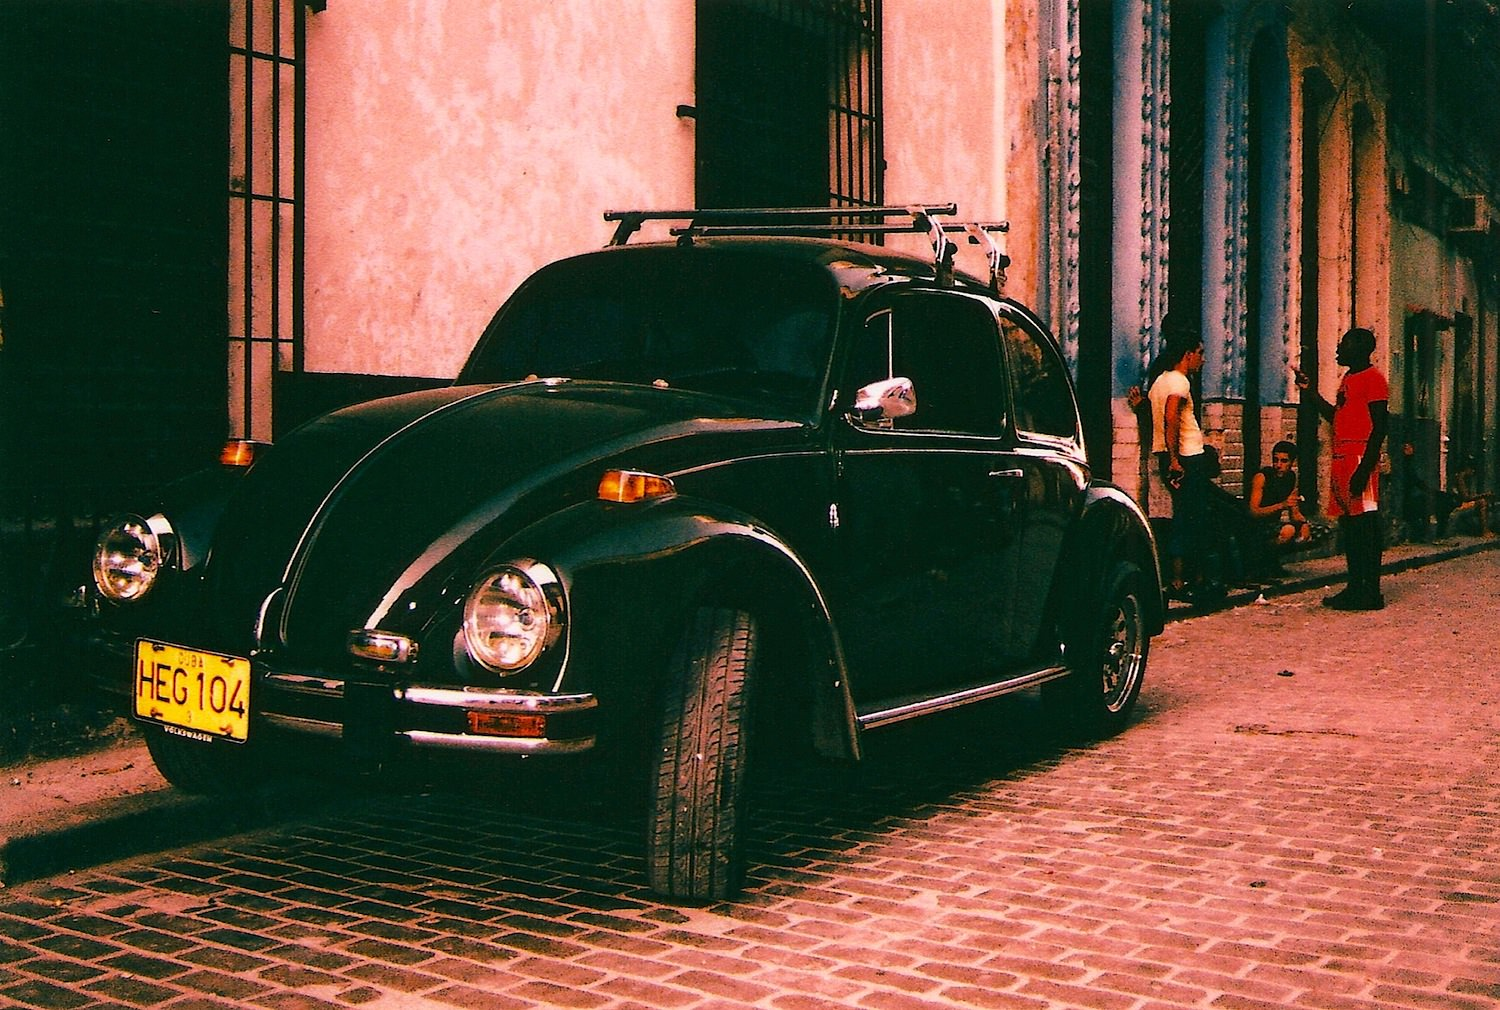 Throughout the 1970's, however, Cuba enjoyed prosperity. The USSR traded sugar at three times the market price for the privilege of using the island as communist satellite state. The state run economy saw enough food for all, and while the new Russian made cars were not nearly as cool as the vintage Cadillacs, at least the Cubans had new wheels to spin.